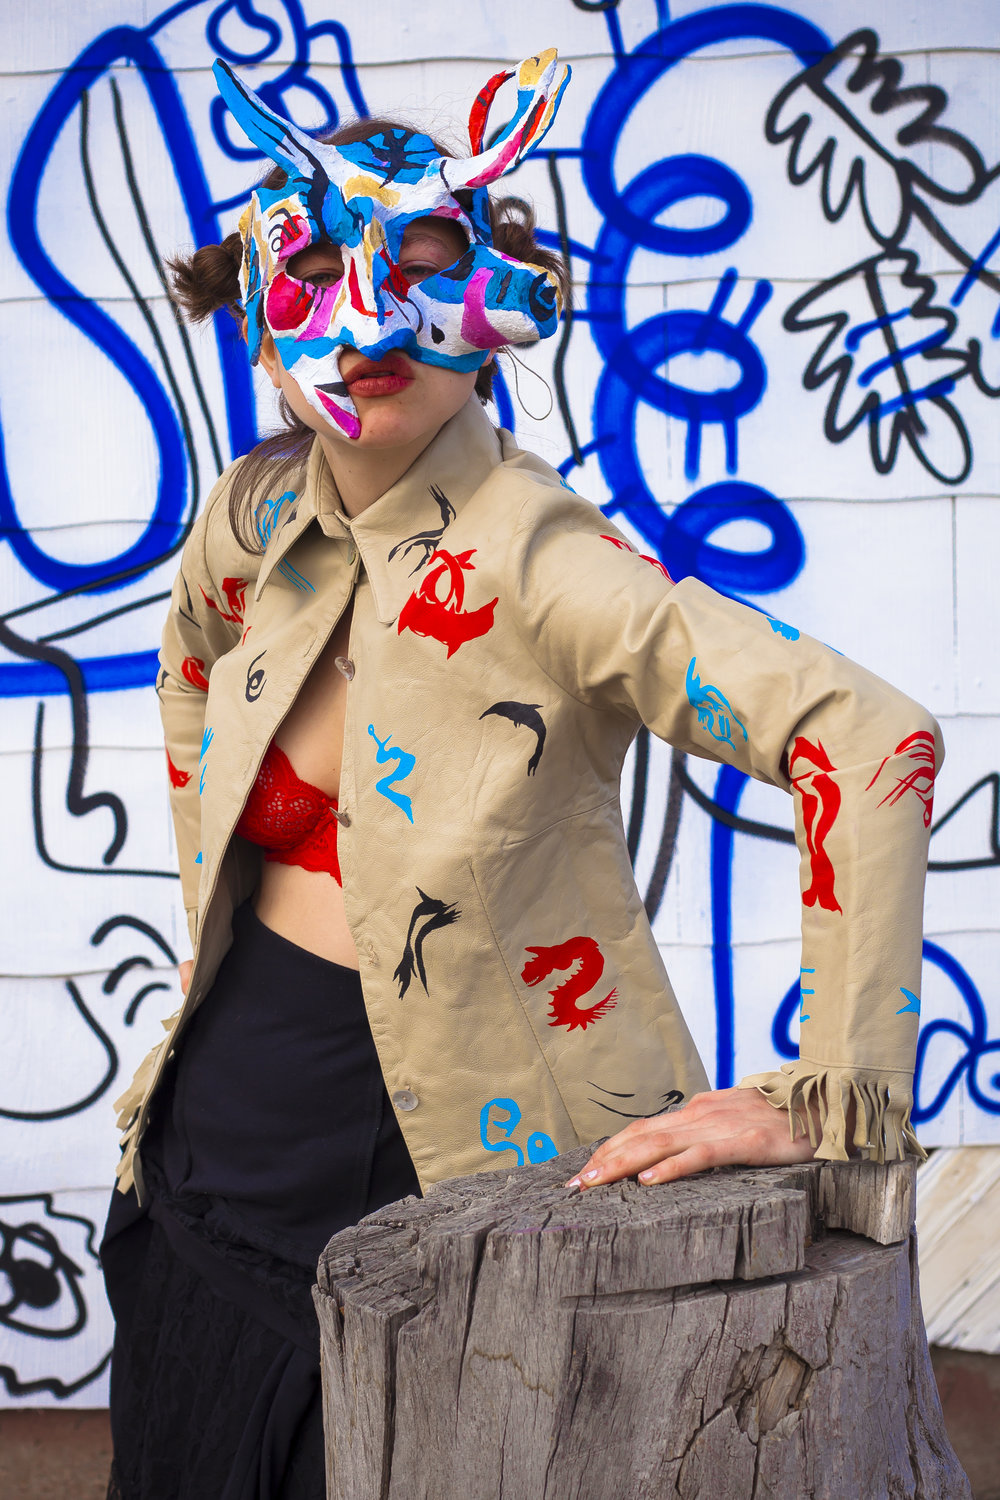 papier mâchée mask and hand painted leather jacket (2017)